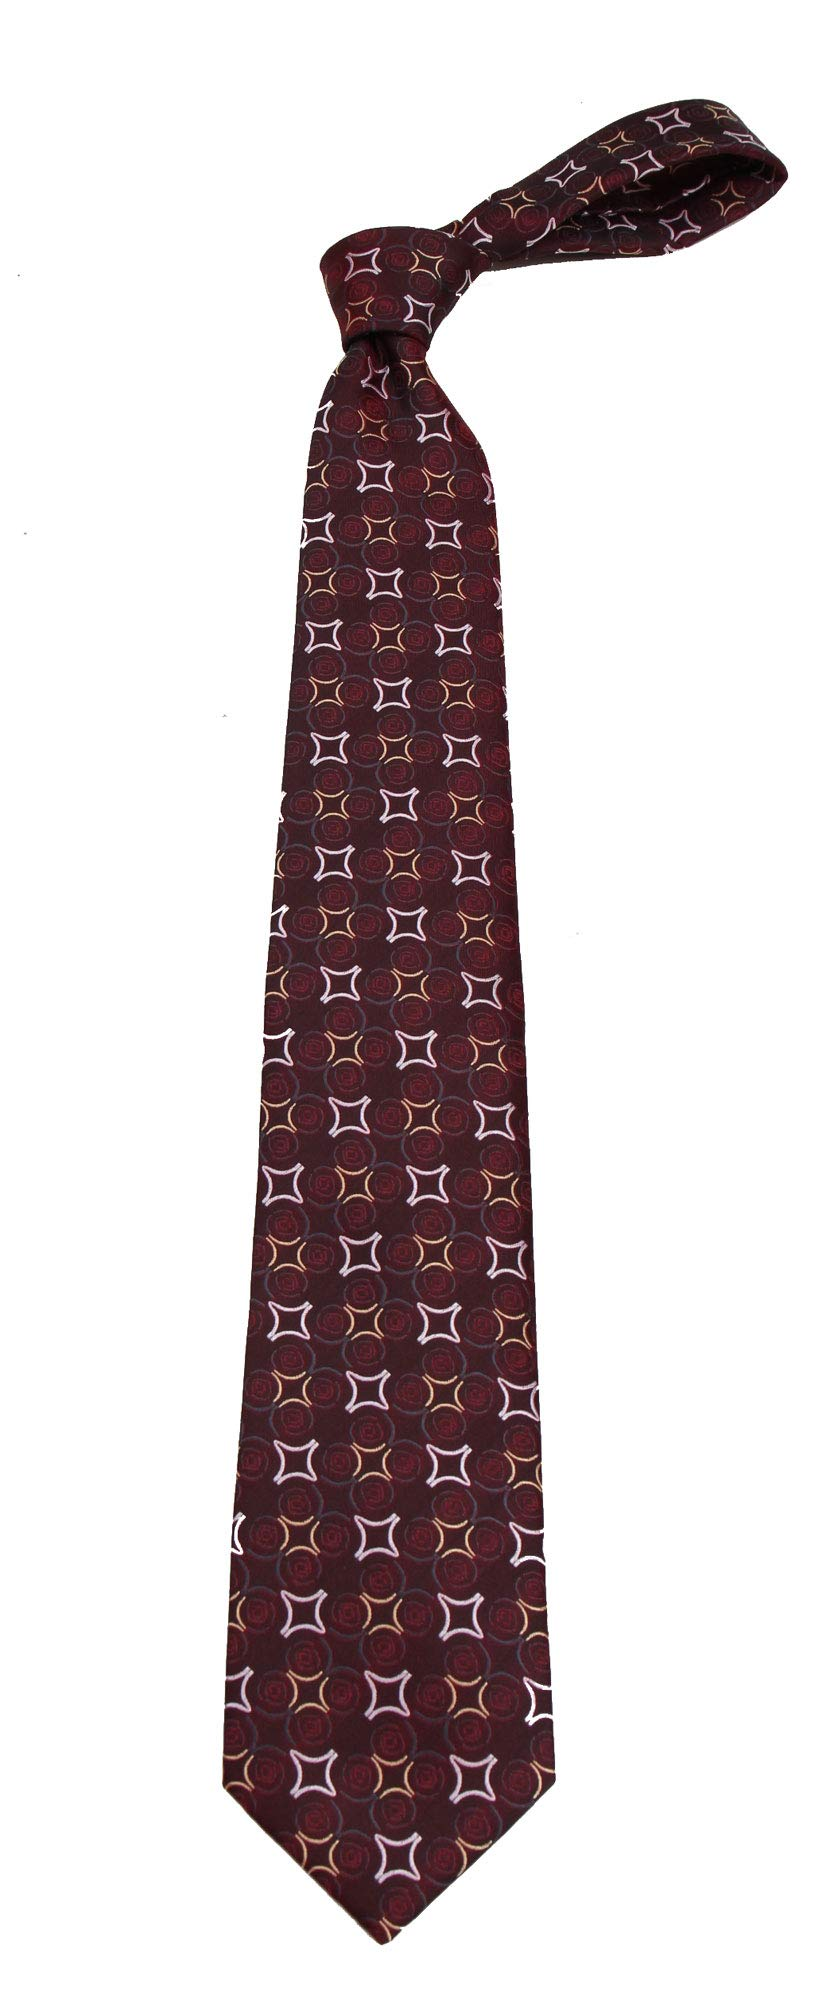 B-11705 - Boys Youth Burgundy Pattern Designer Necktie Ties